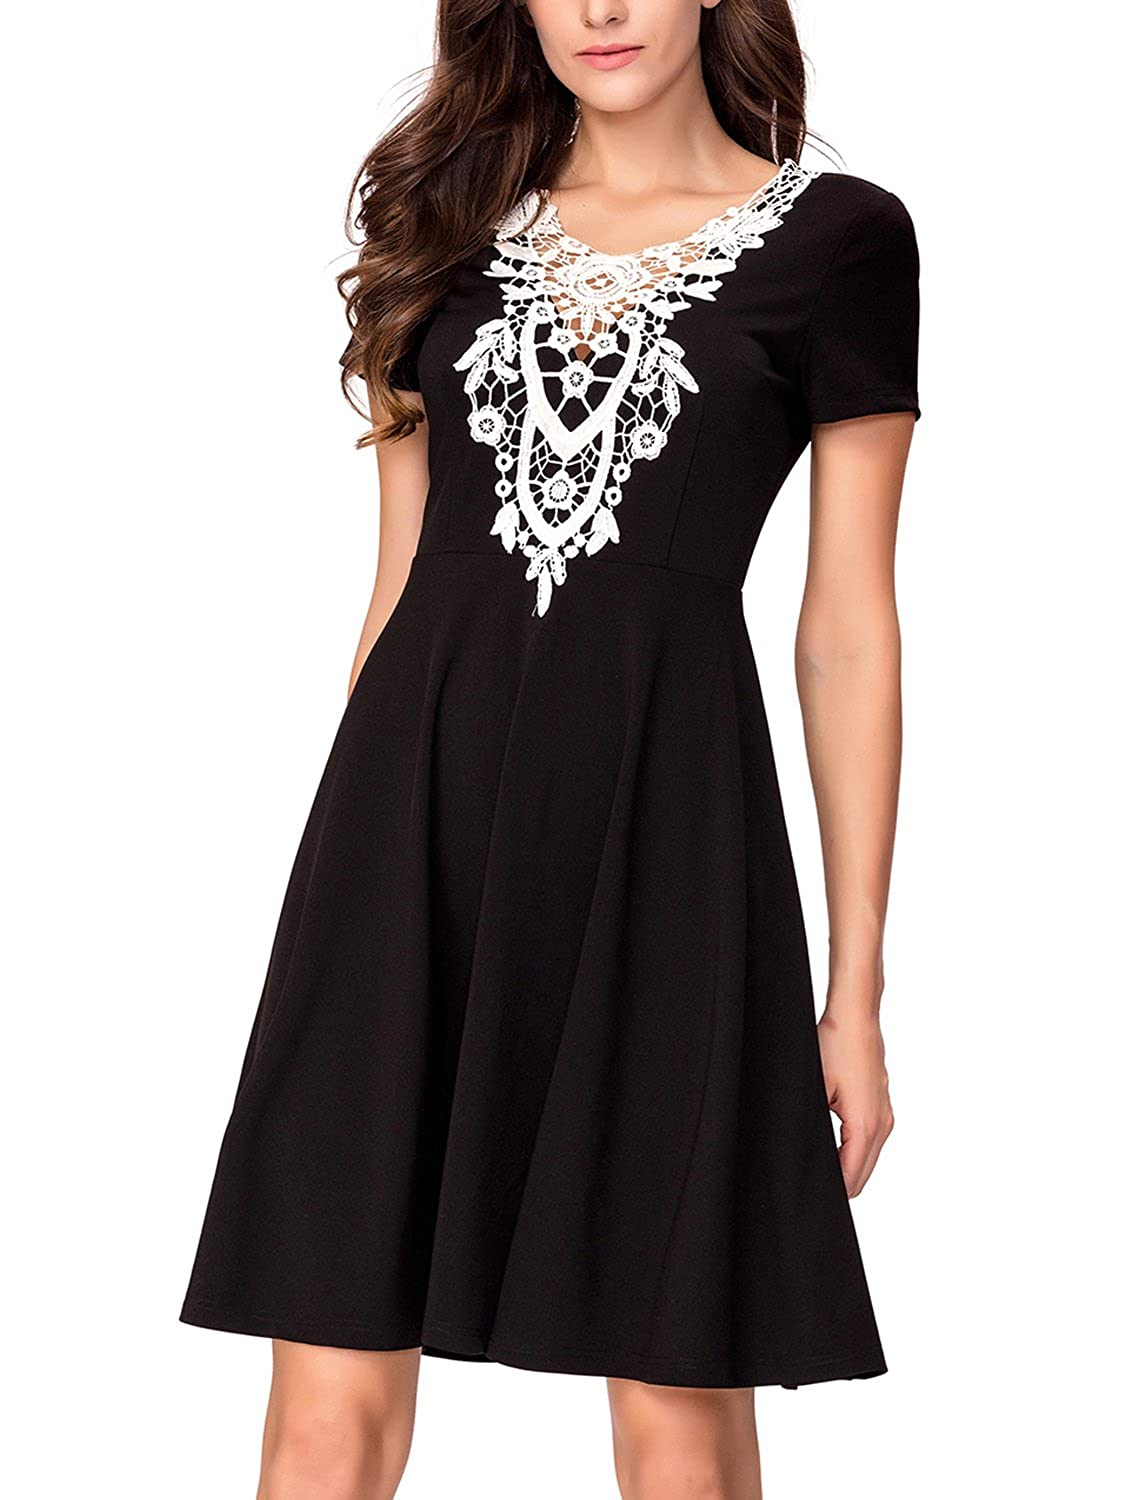 Casual A line Dresses, Noctflos Women Short Sleeve Embroidery V Neck Flare Dress